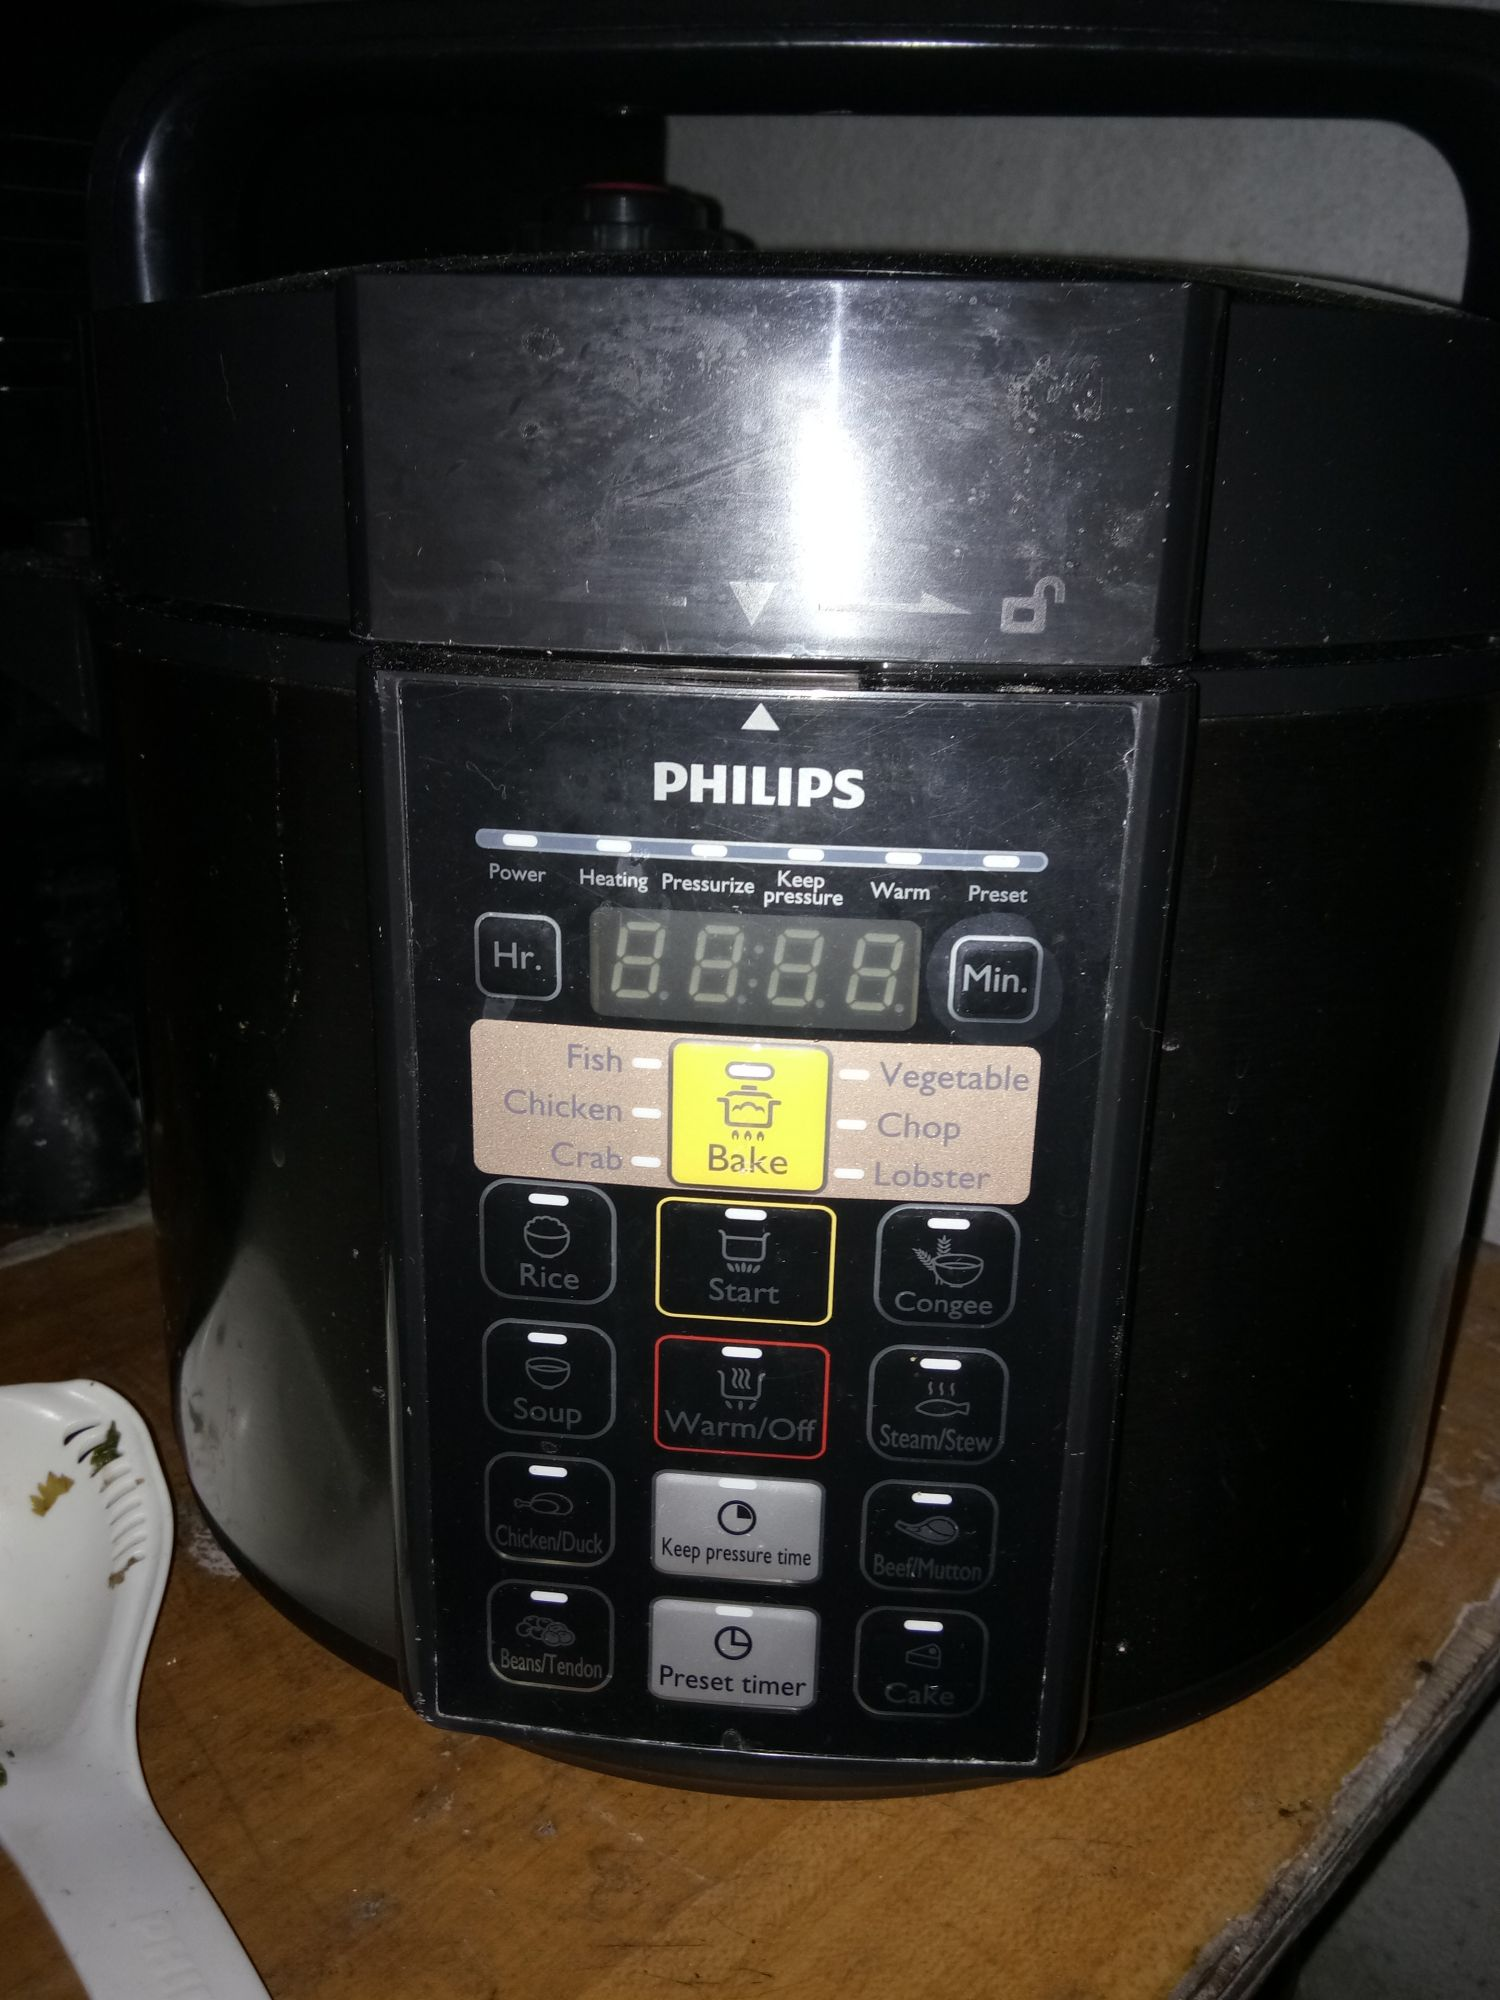 Philips All-in-One Pressure Cooker reviews